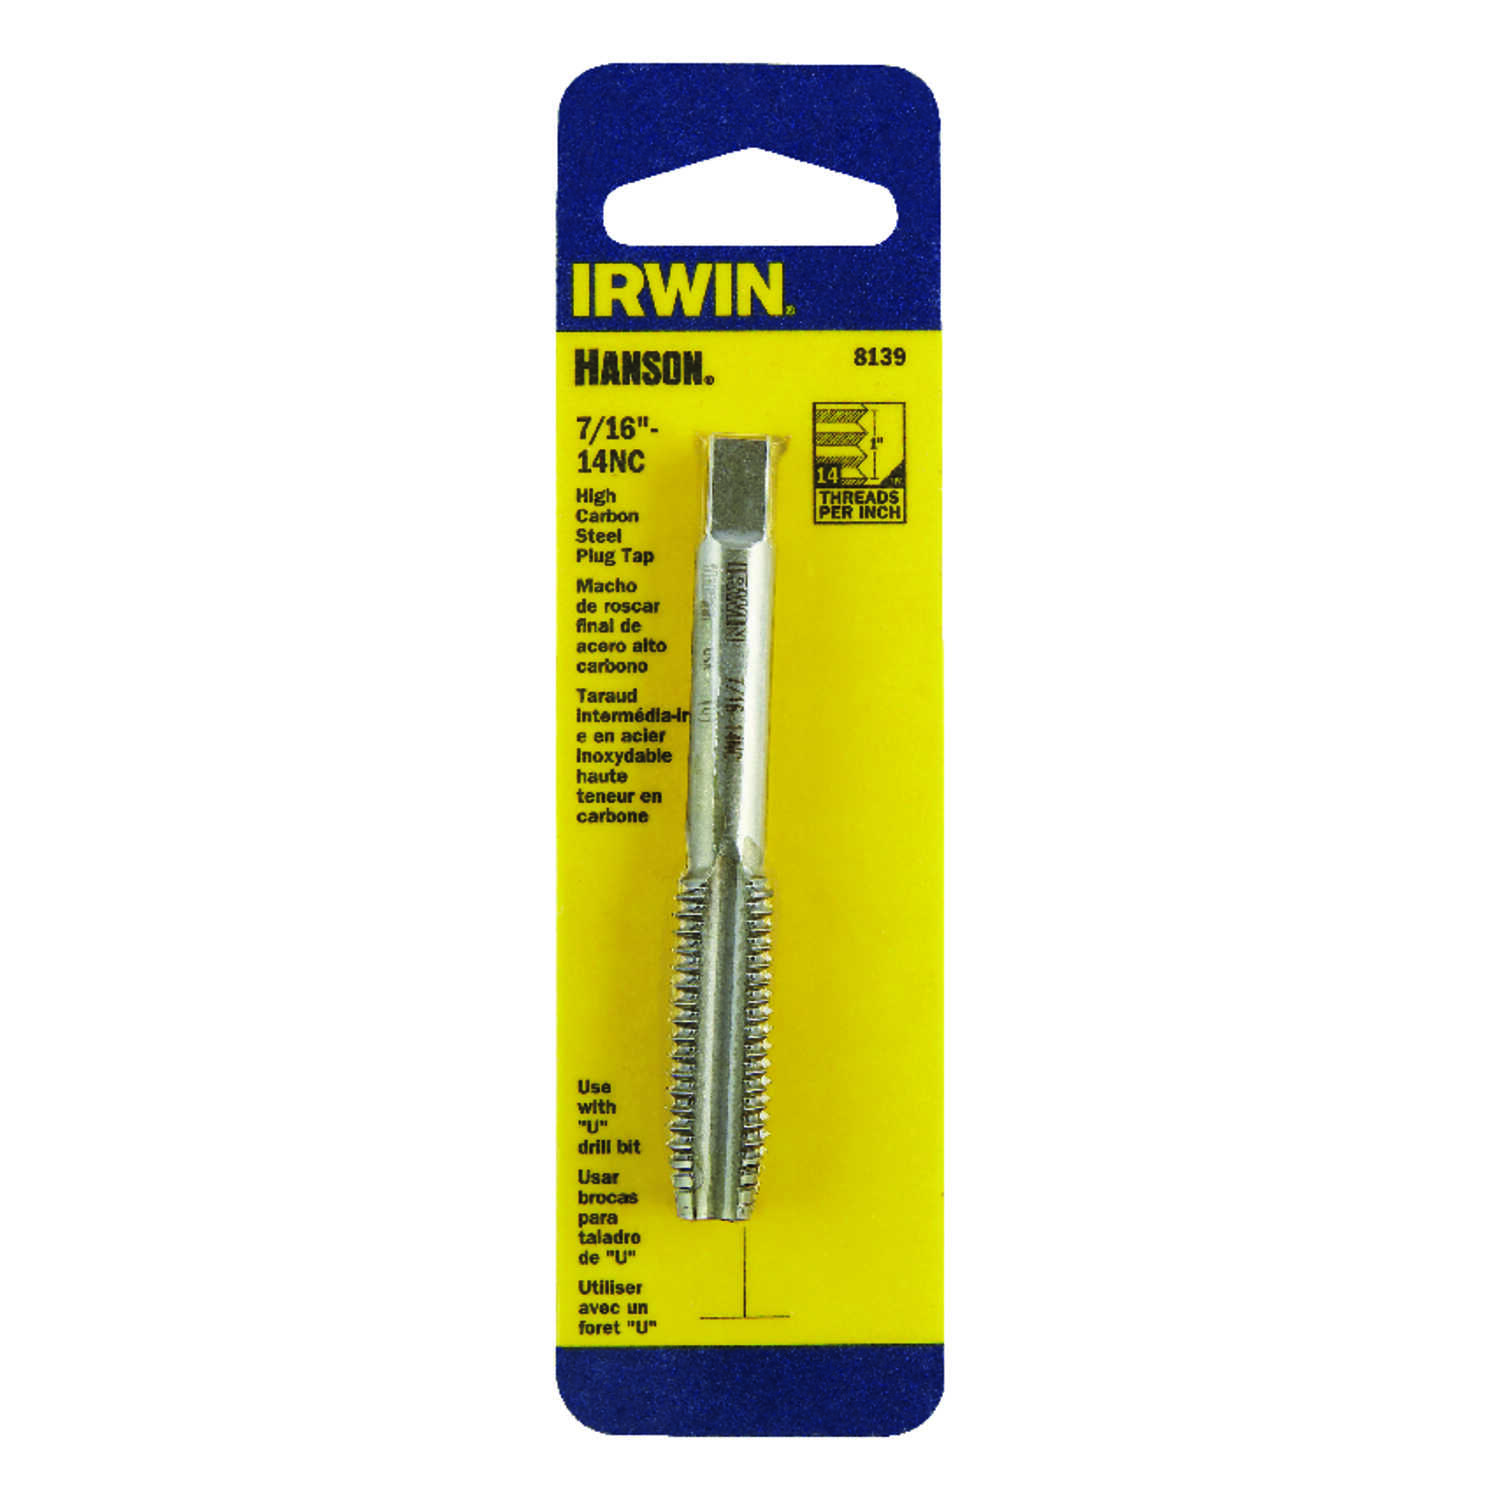 Irwin  Hanson  High Carbon Steel  SAE  Fraction Tap  NC  7/16 in.-14NC  1 pc.